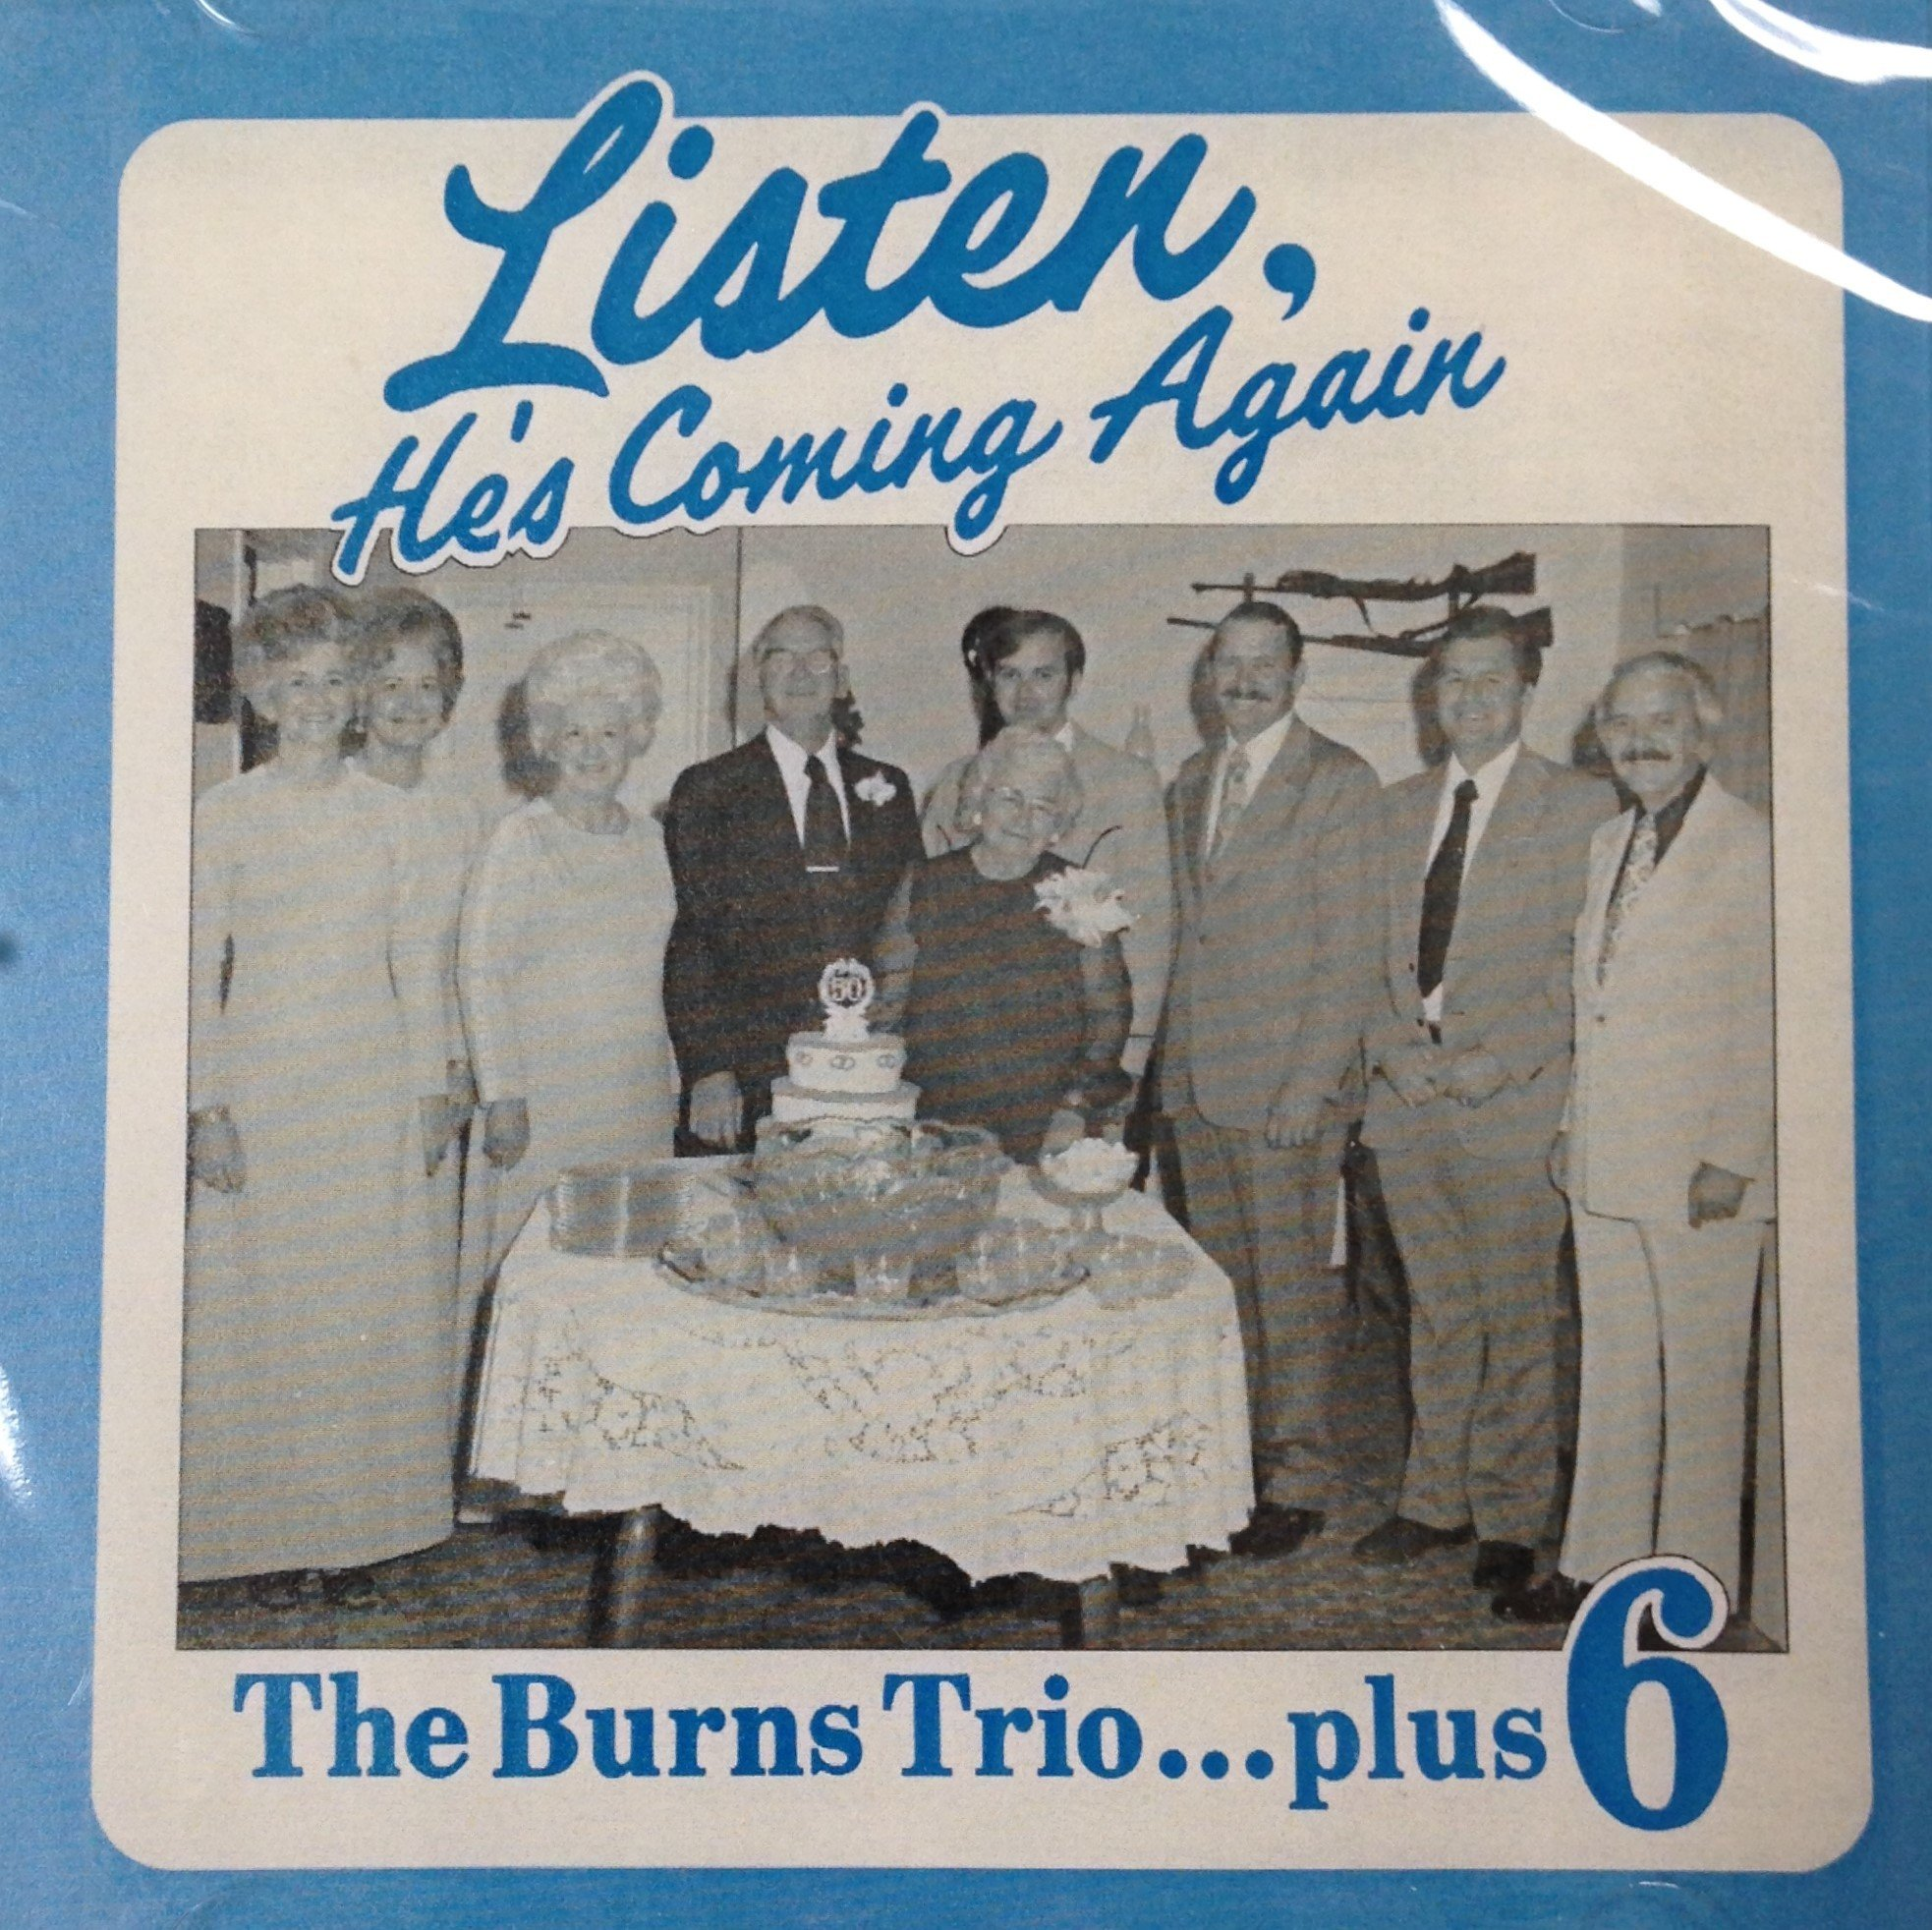 The Burns Trio:  Listen, He's Coming Again  CD 00036